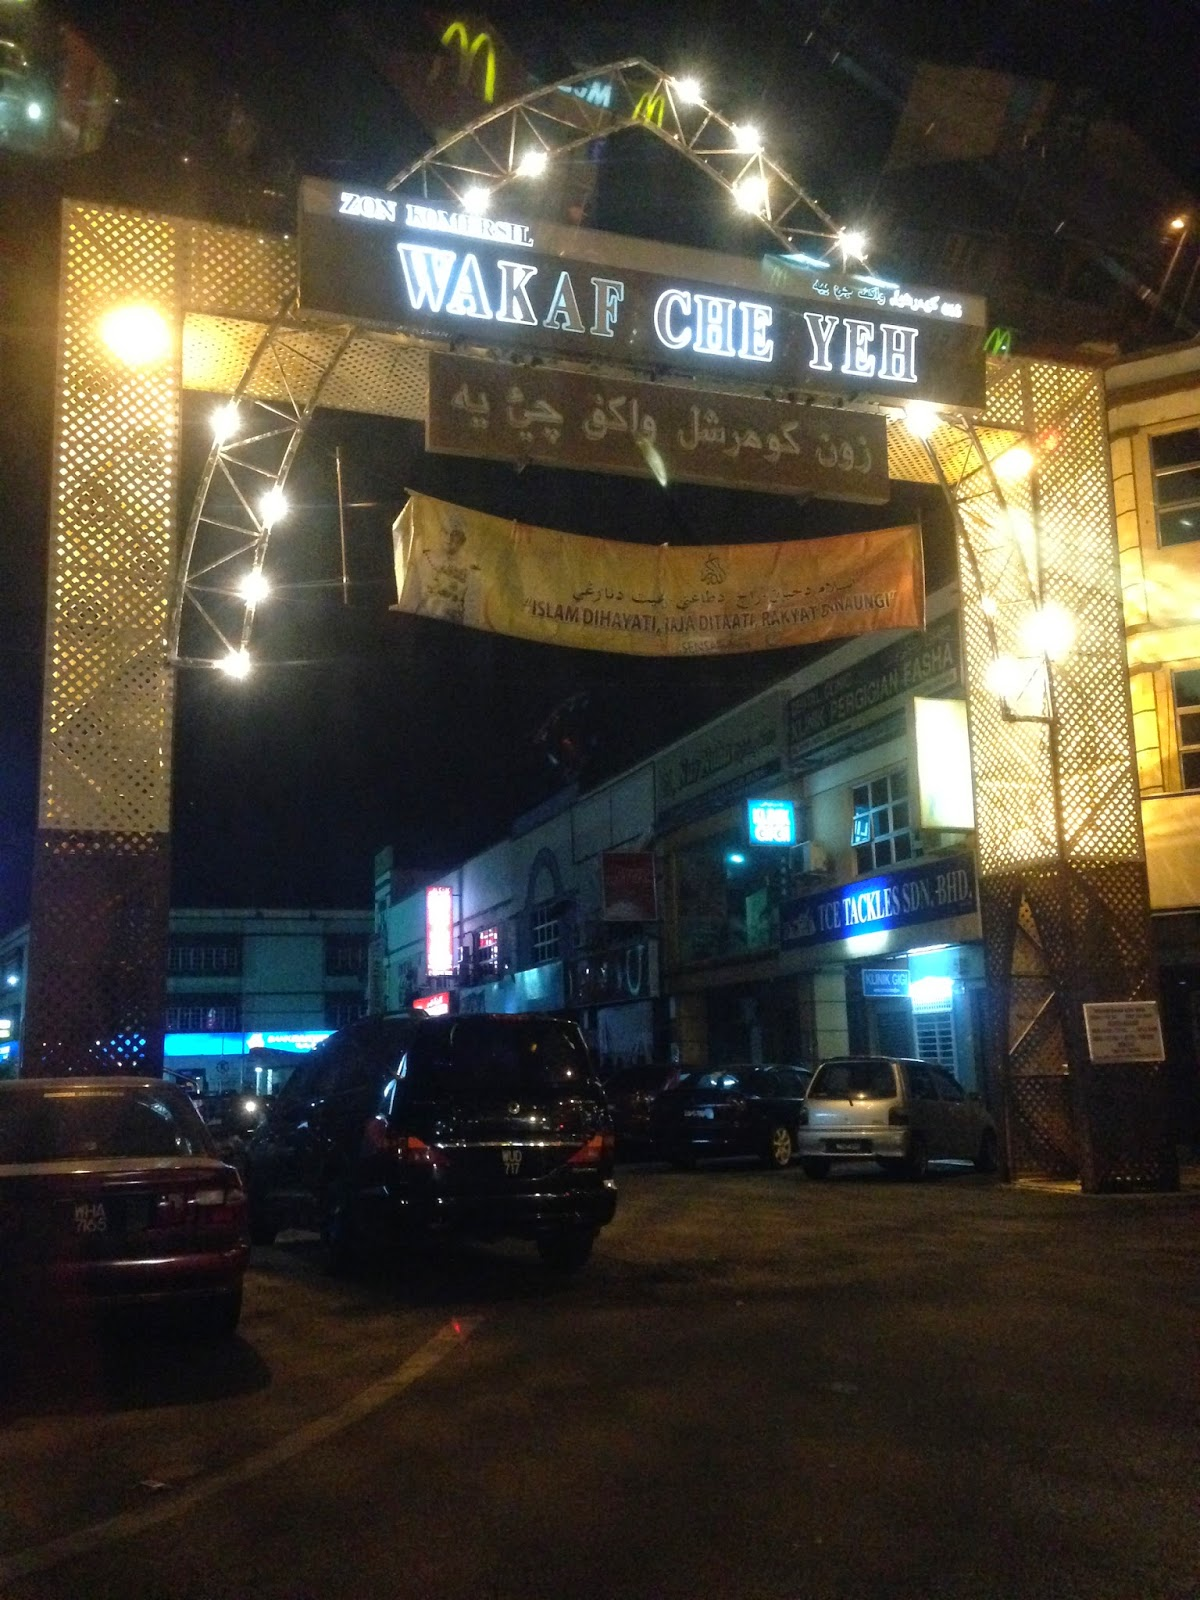 Wakaf Che Yeh